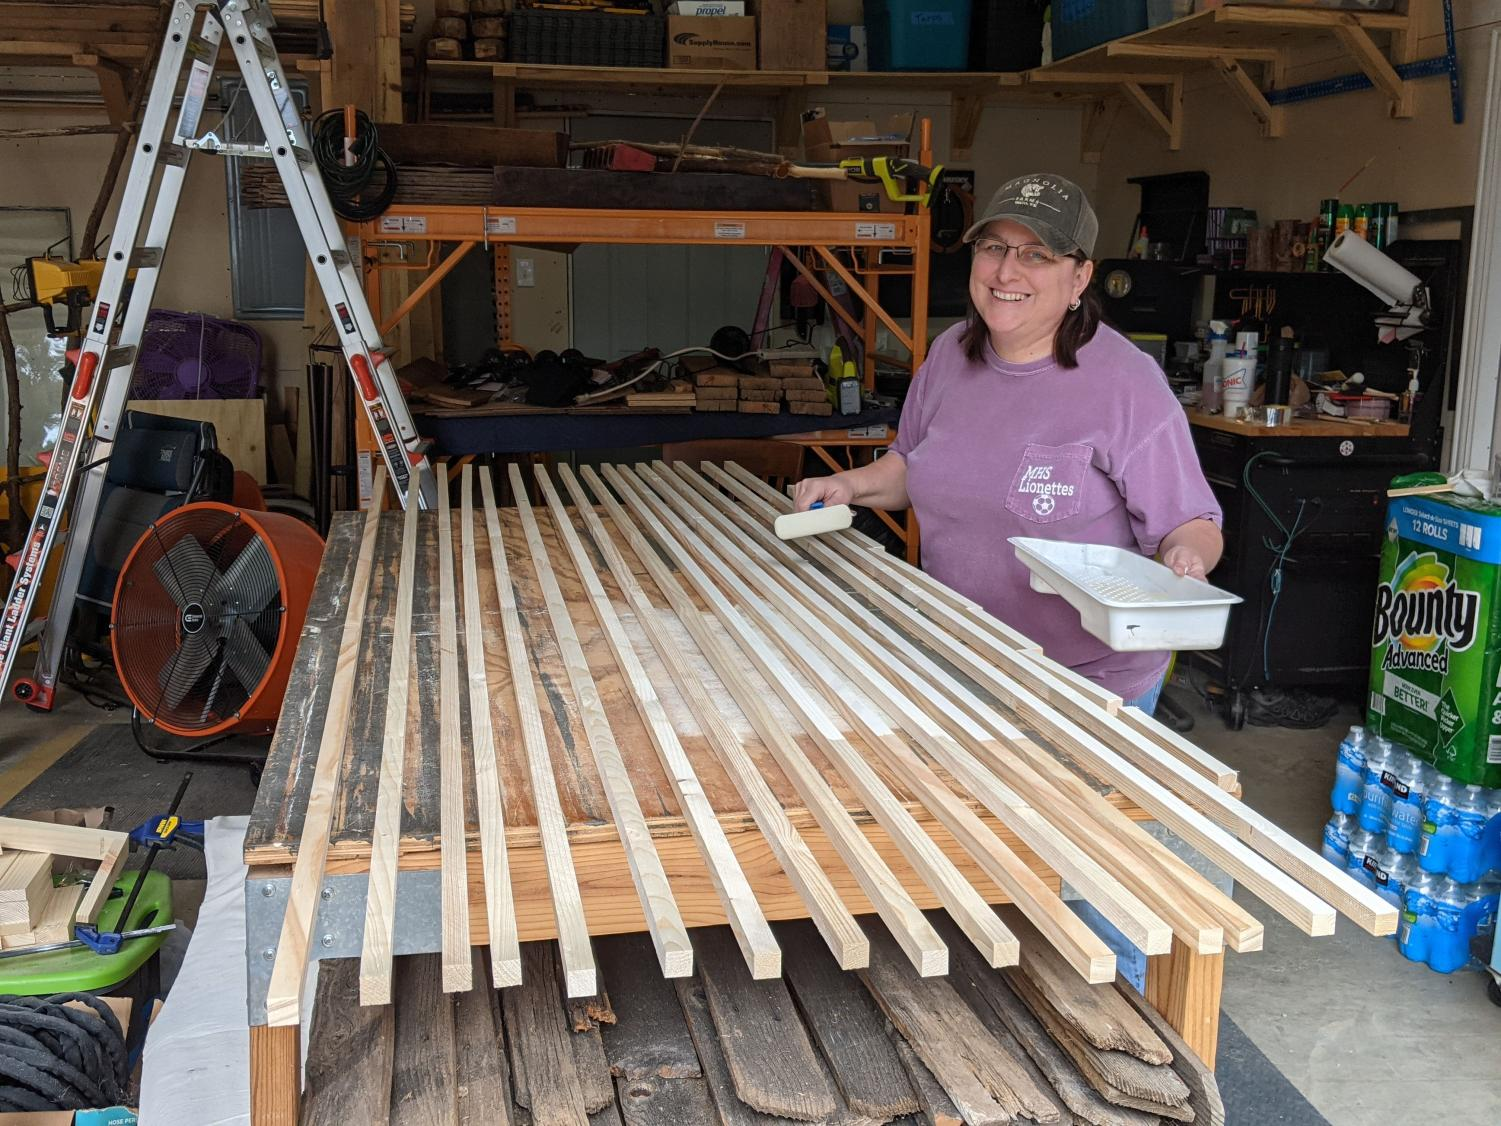 Geometry teacher Crystal Smith started her own woodworking business in 2011. Smith continues woodworking as a passion project for herself, and close family and friends today.